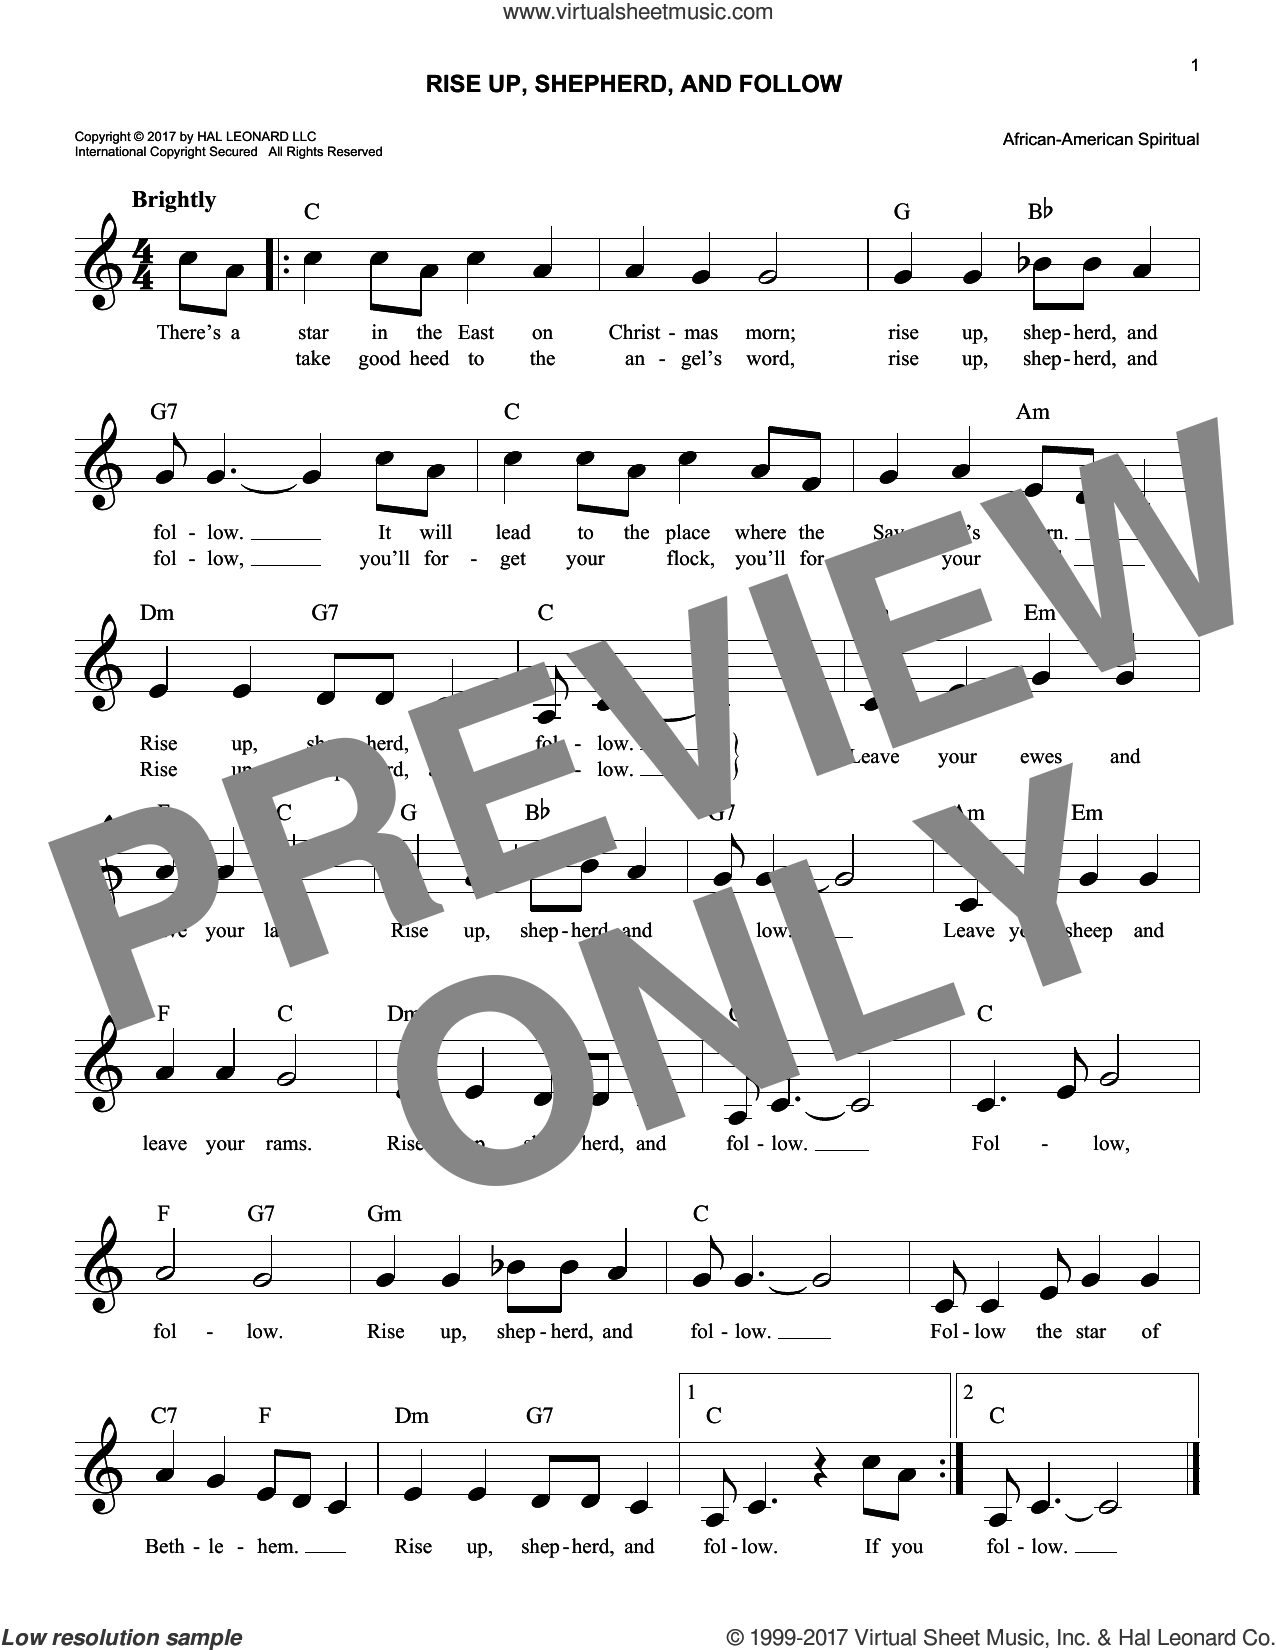 Rise Up, Shepherd, And Follow sheet music for voice and other instruments (fake book), intermediate skill level